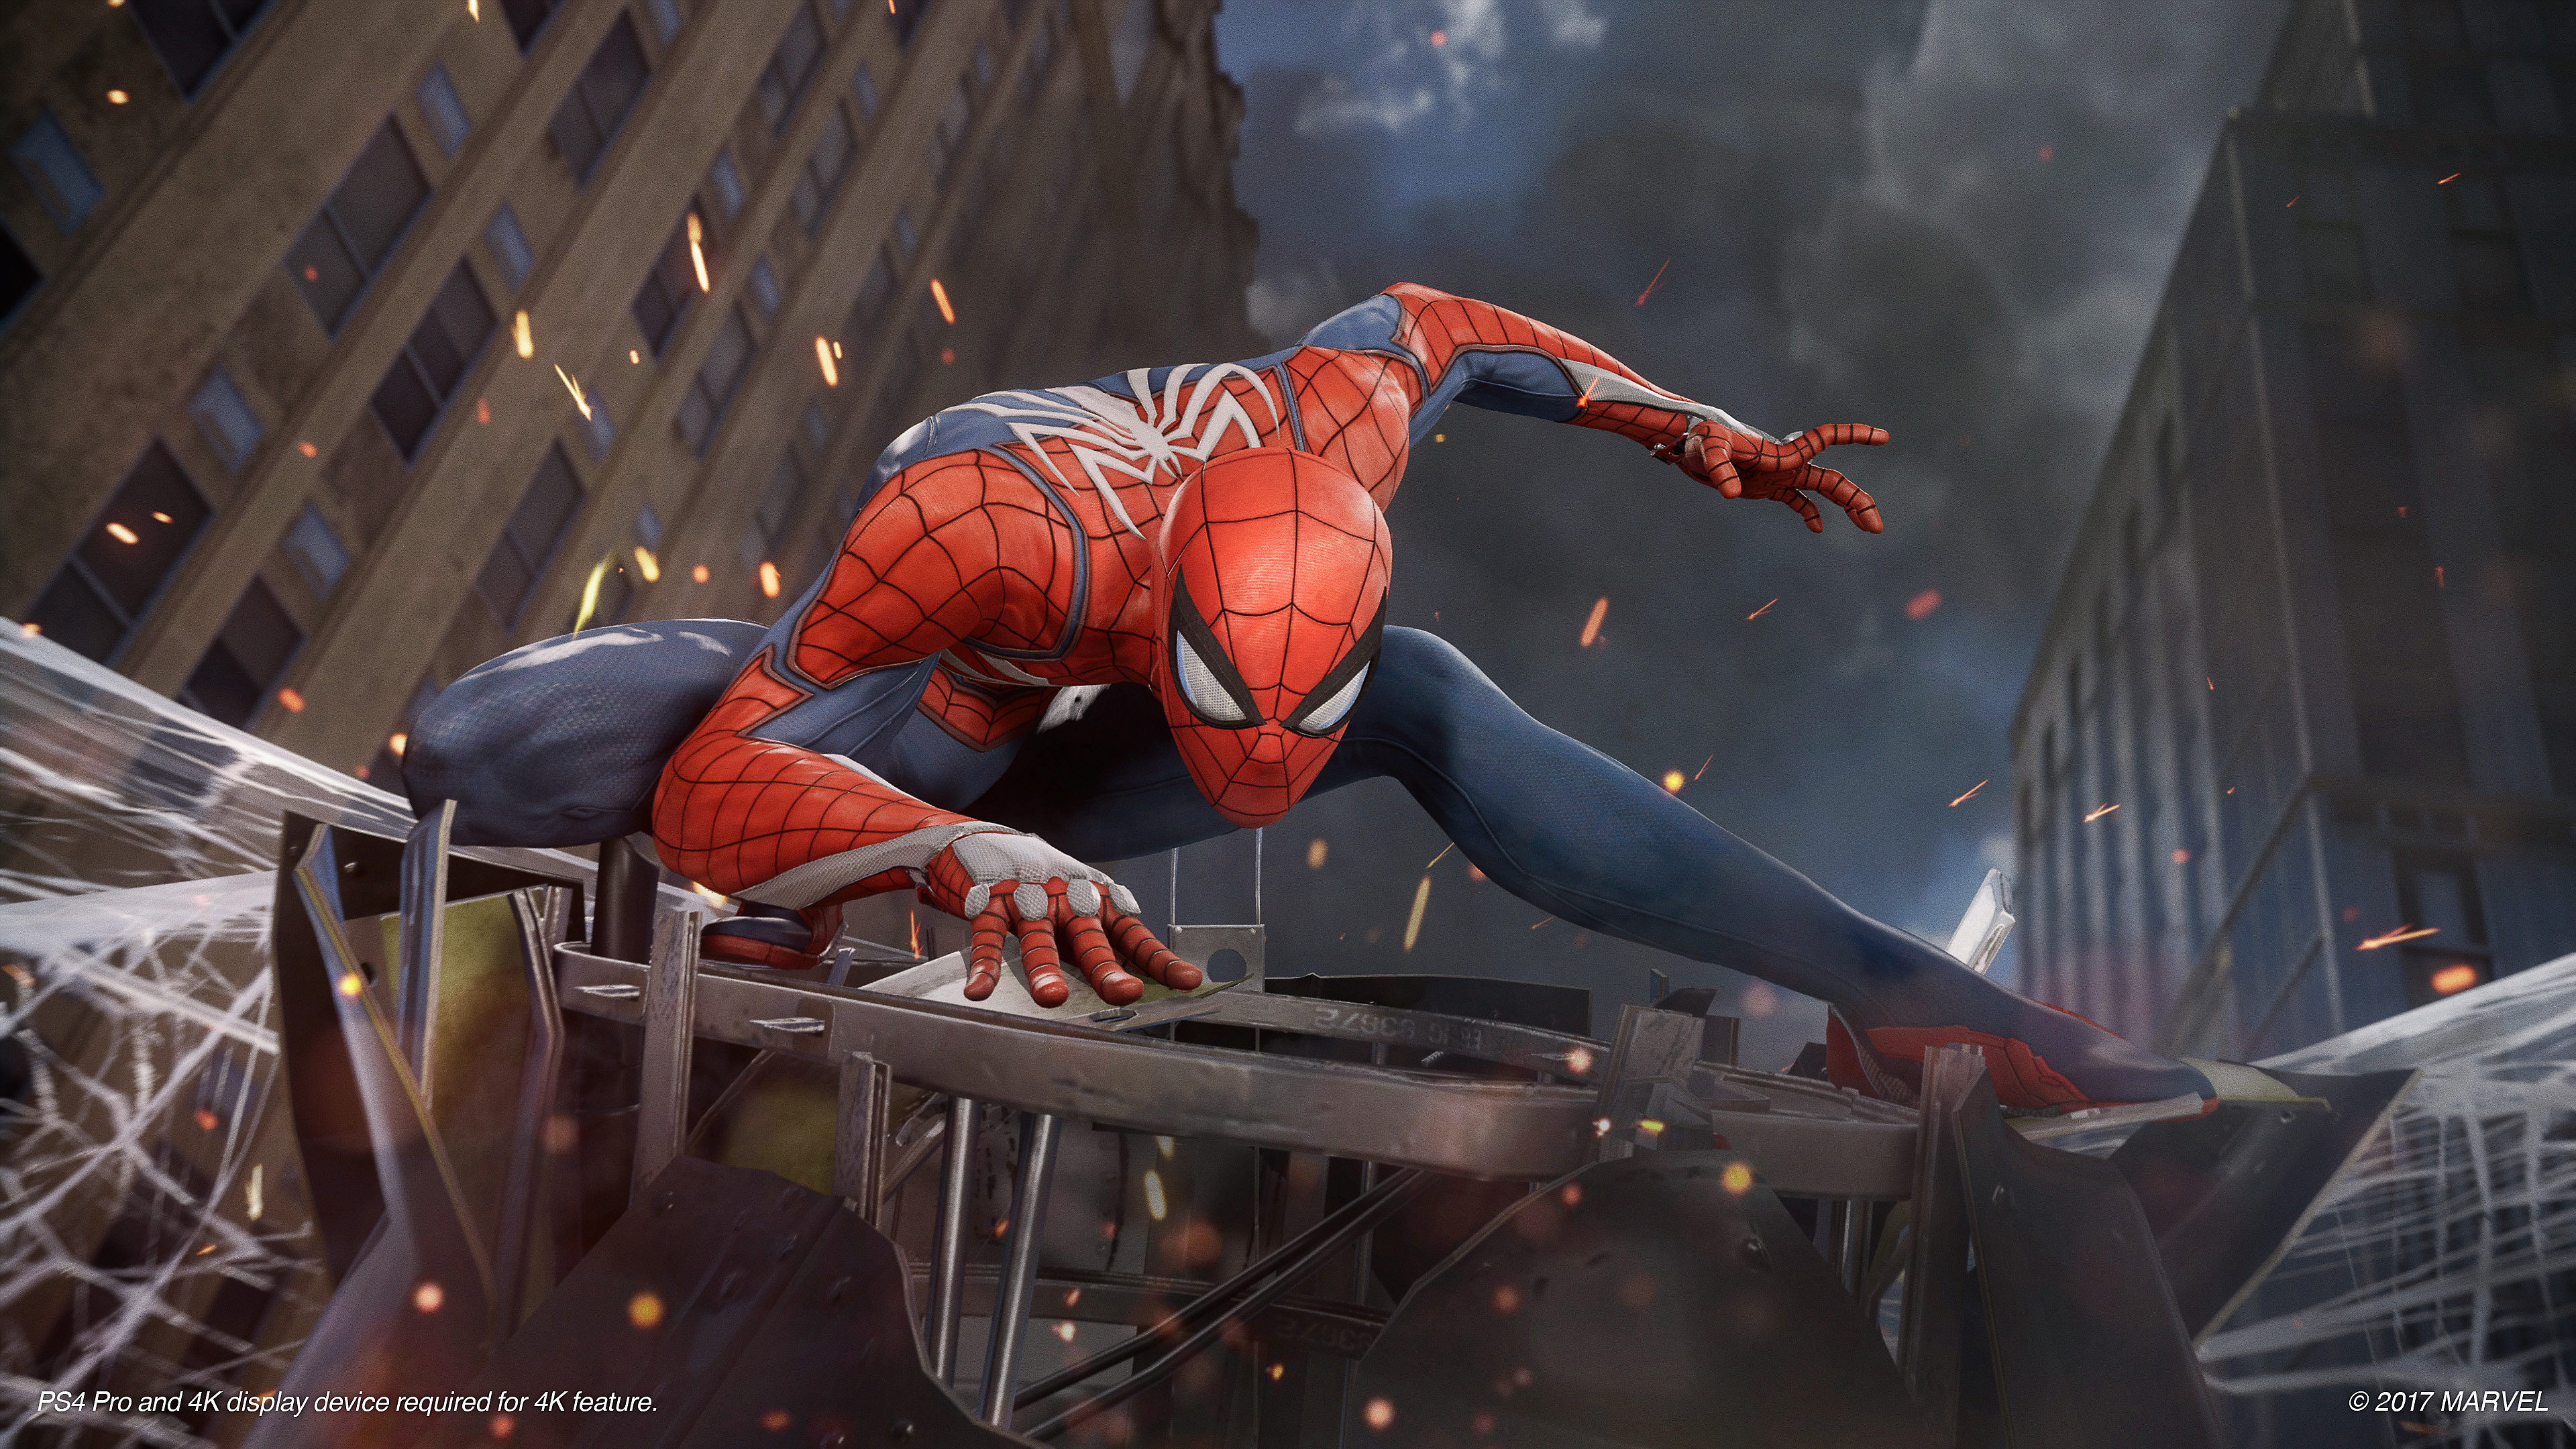 E3 2018: Hands on with Marvel's Spider-Man